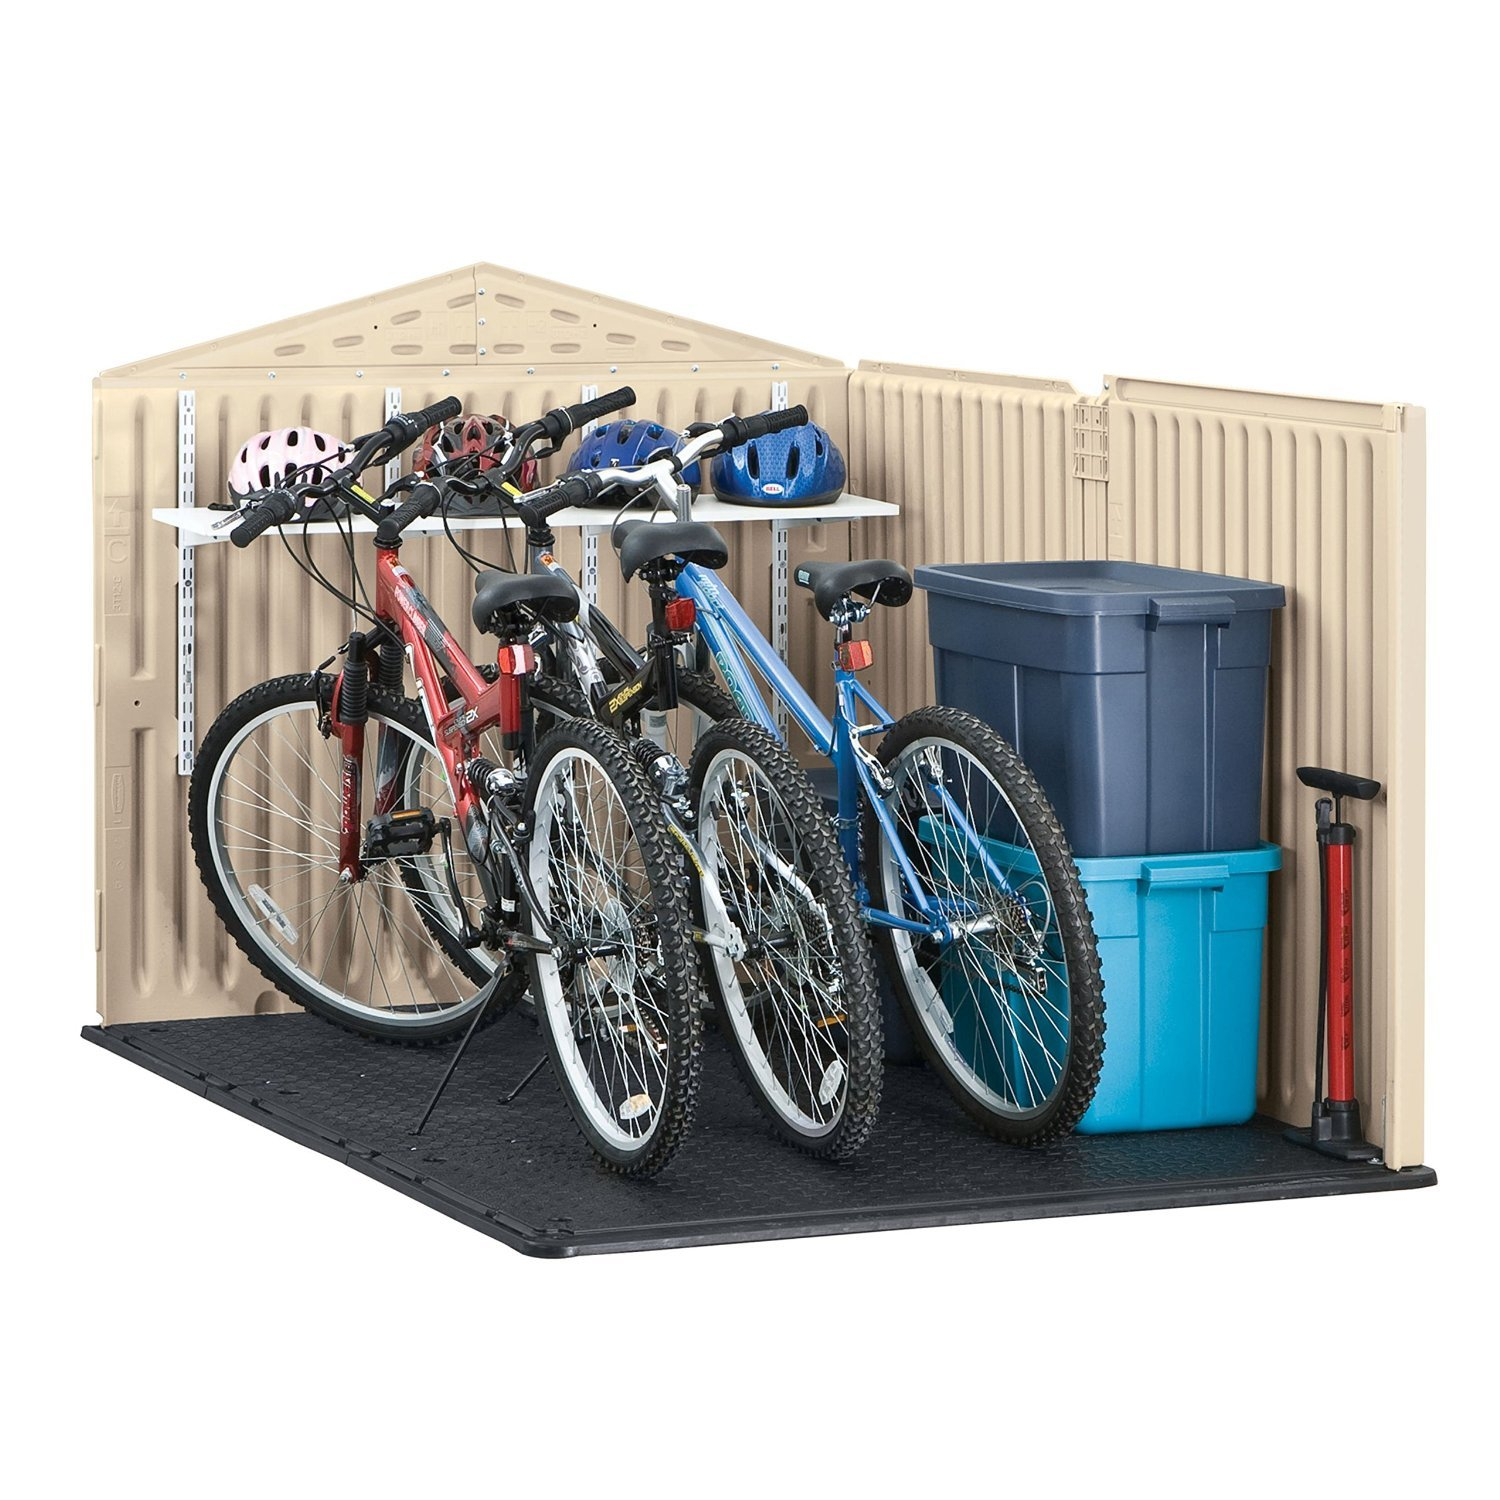 If Someone Wanted To Buy The Best Bike Storage Shed Out There, I Would  Recommend That They Buy The Rubbermaid Outdoor Slide Lid Storage Shed.